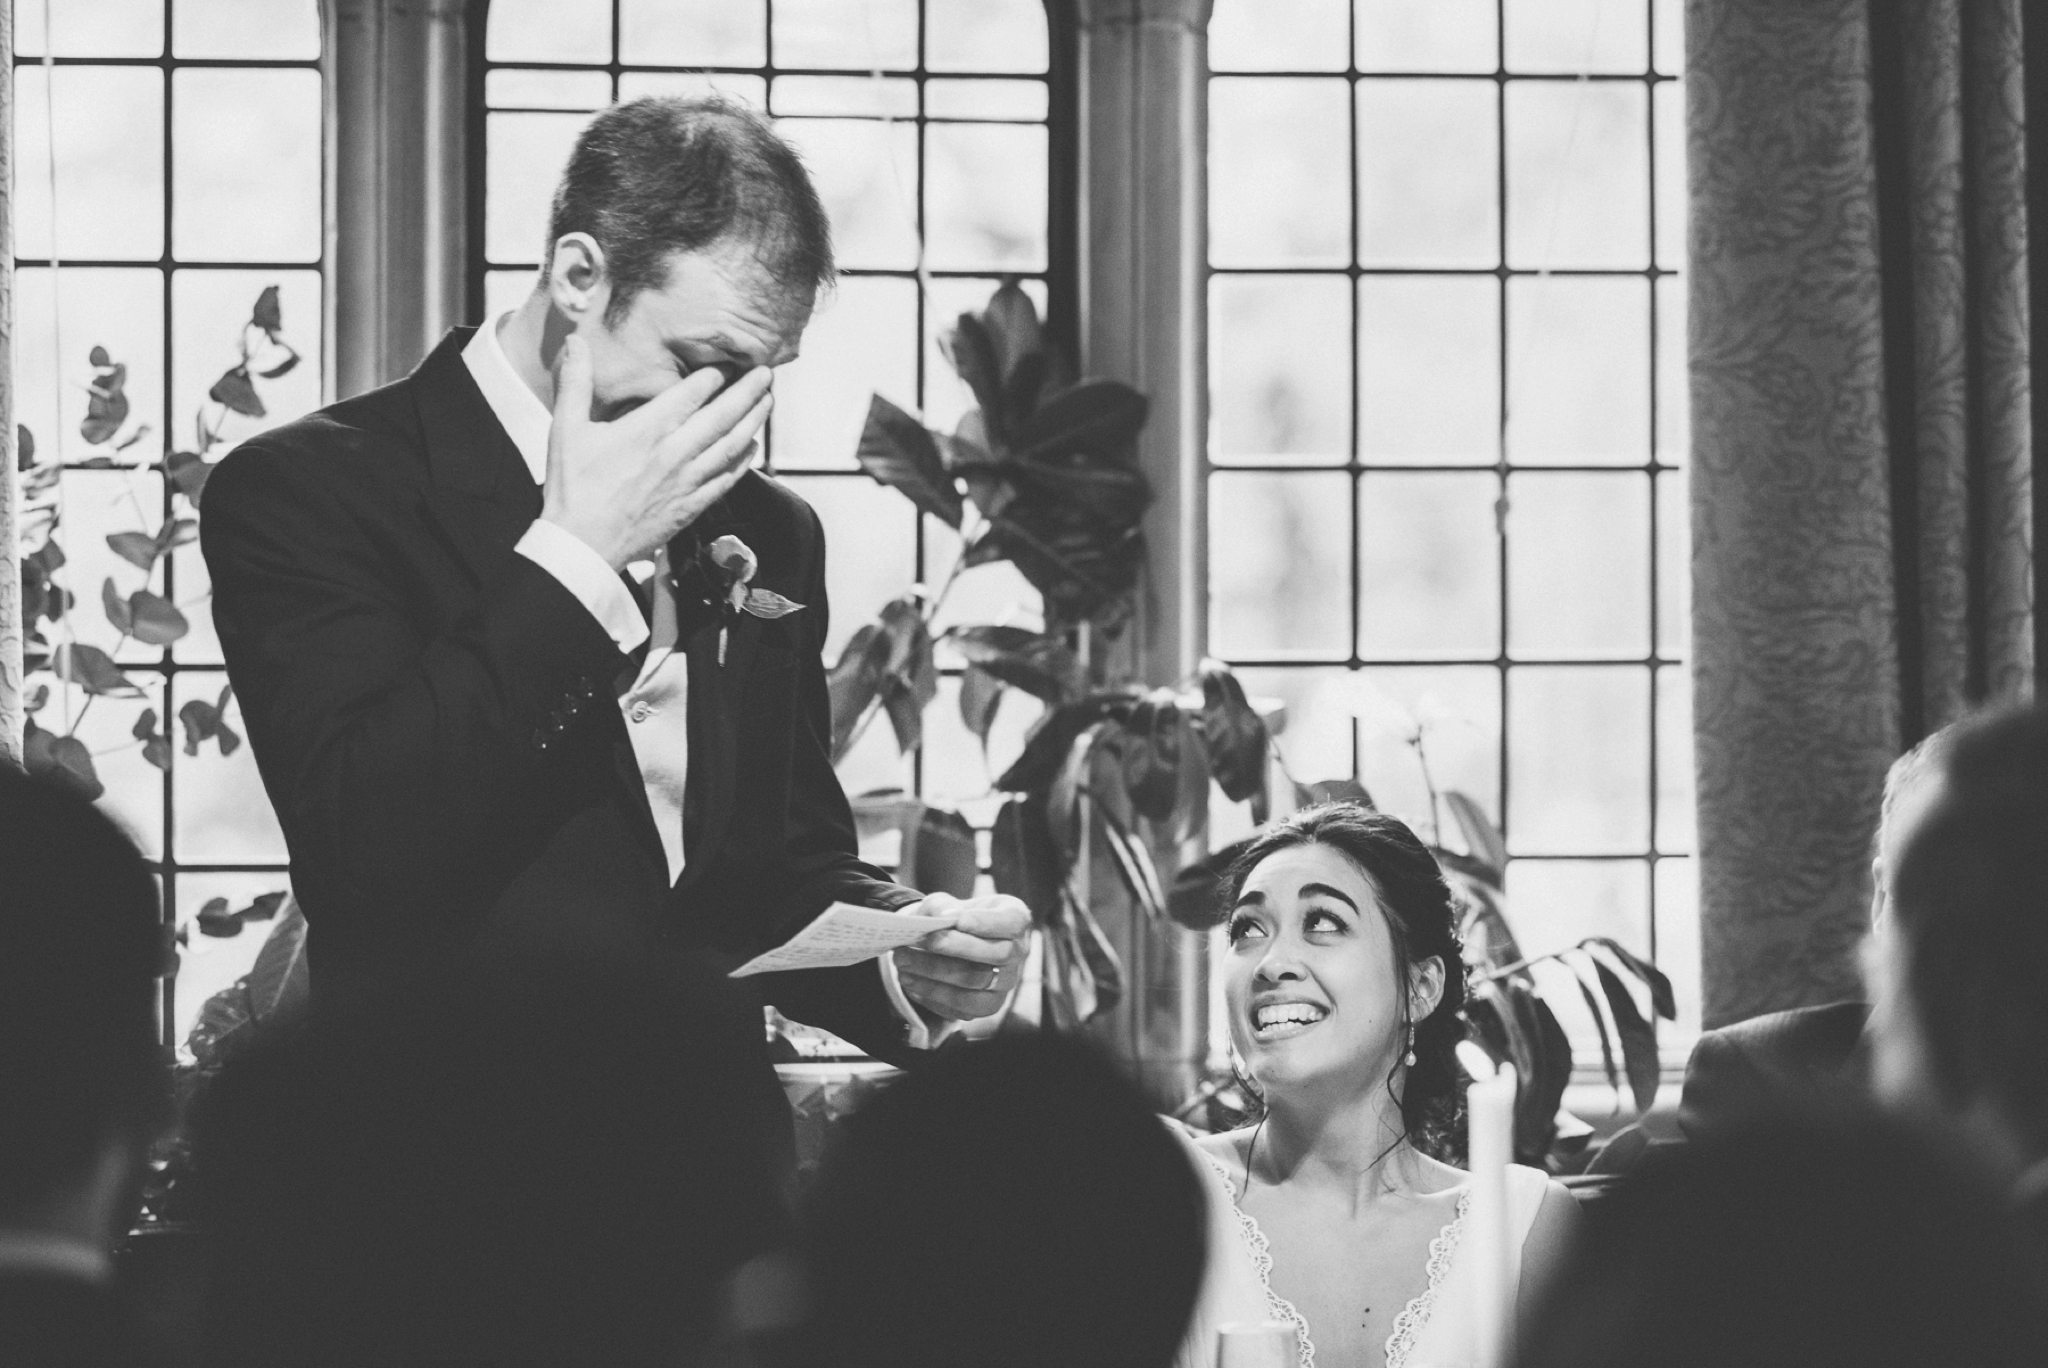 Emotional groom's speech tearing up at his Two Temple Place Wedding speech